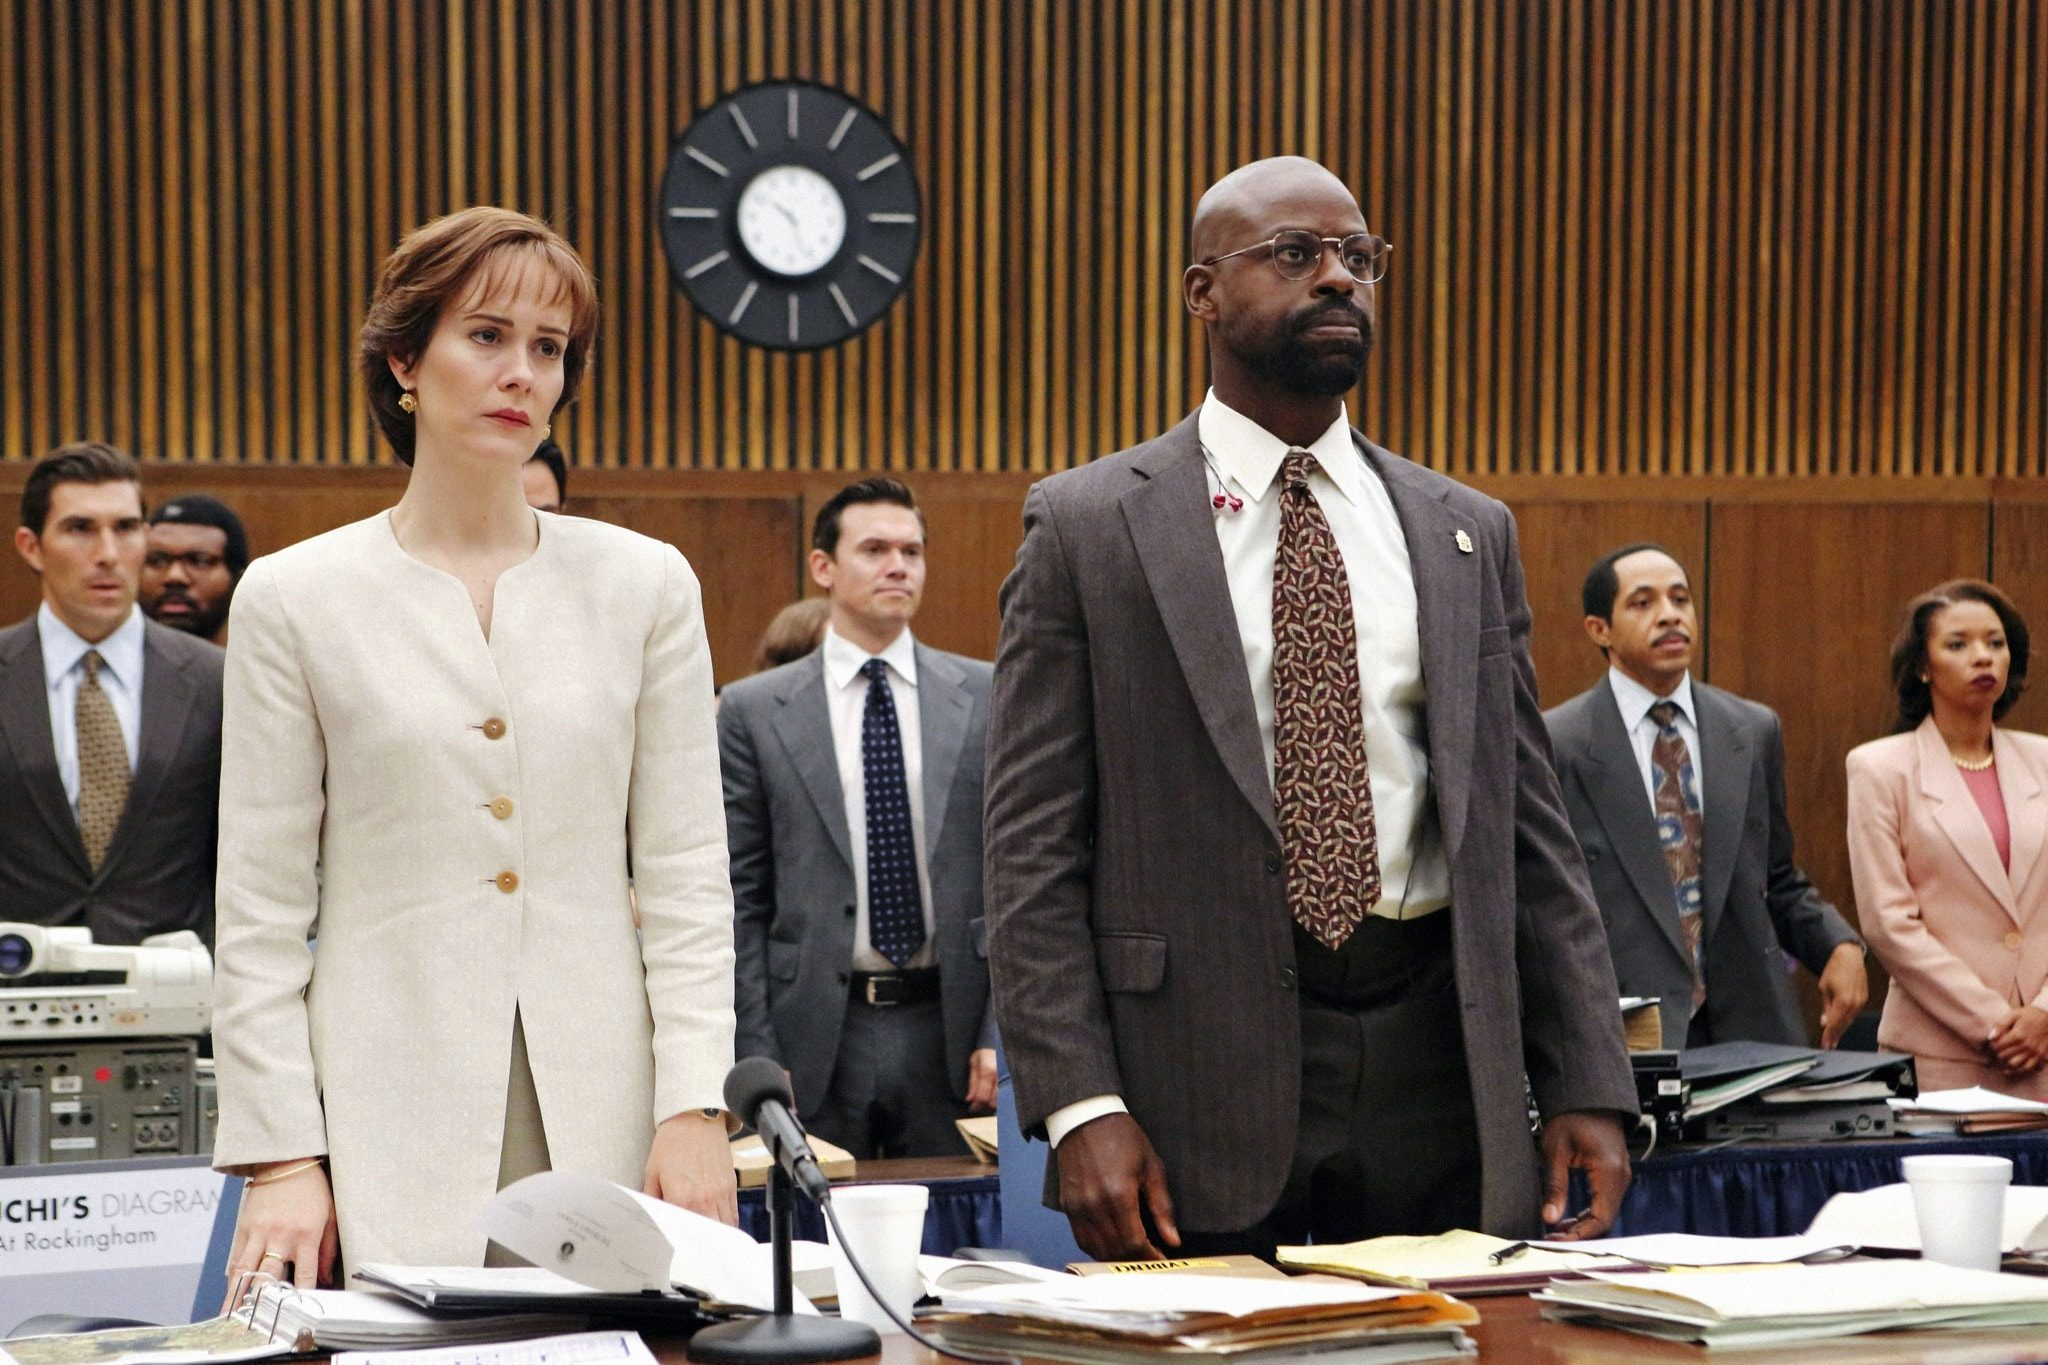 the-people-v-oj-simpson-american-crime-story-image-episode-7